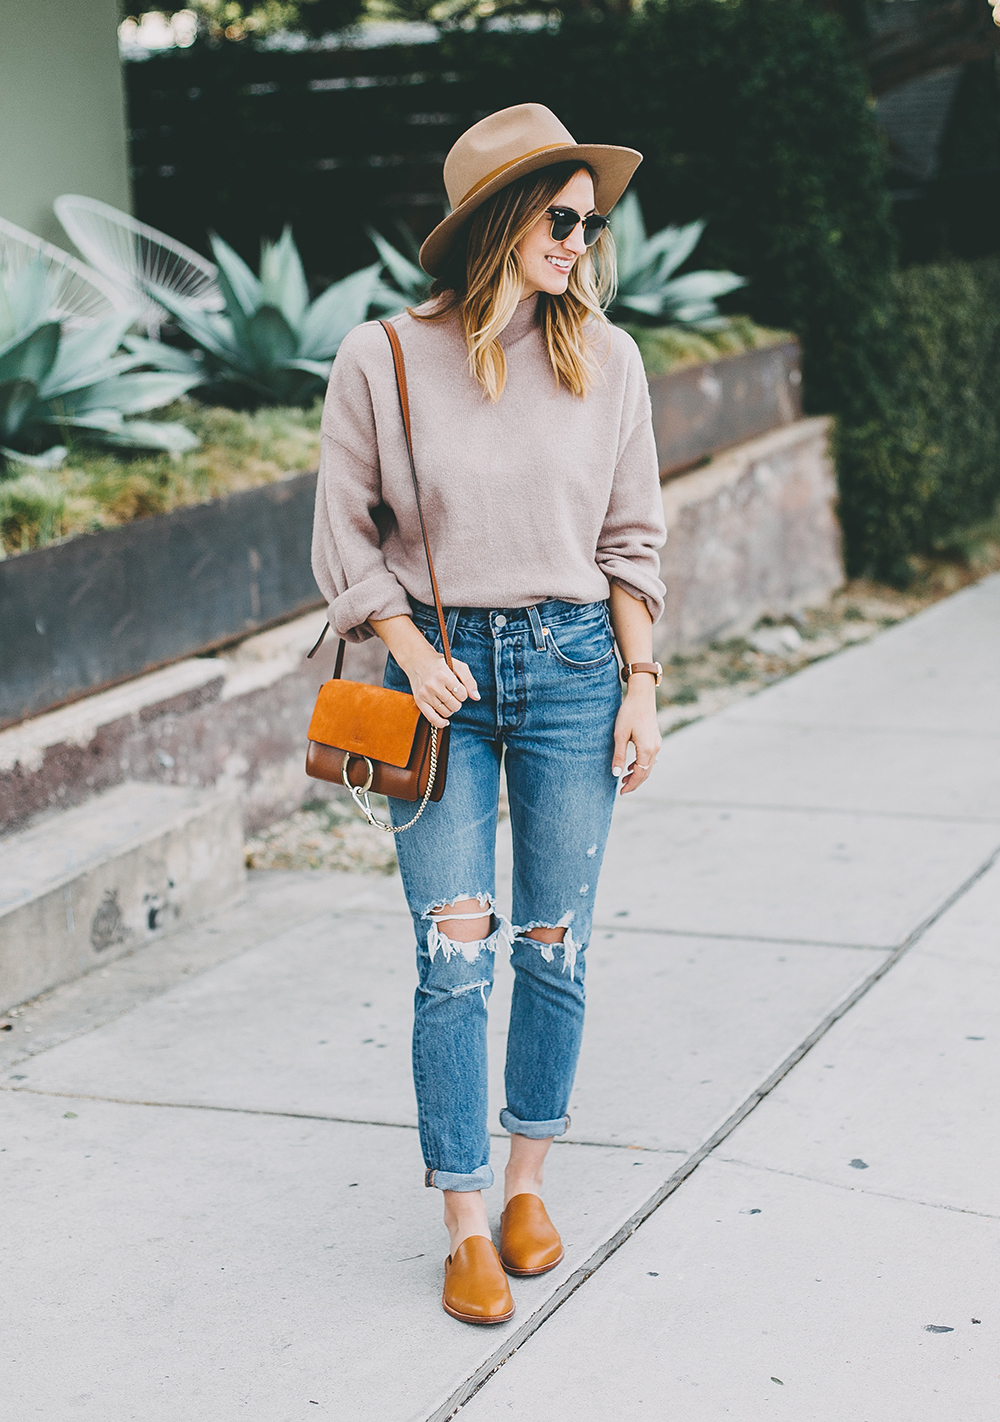 livvyland-blog-olivia-watson-mauve-mock-neck-sweater-levis-501-jeans-urban-outfitters-fortress-of-inca-tan-leather-slides-2